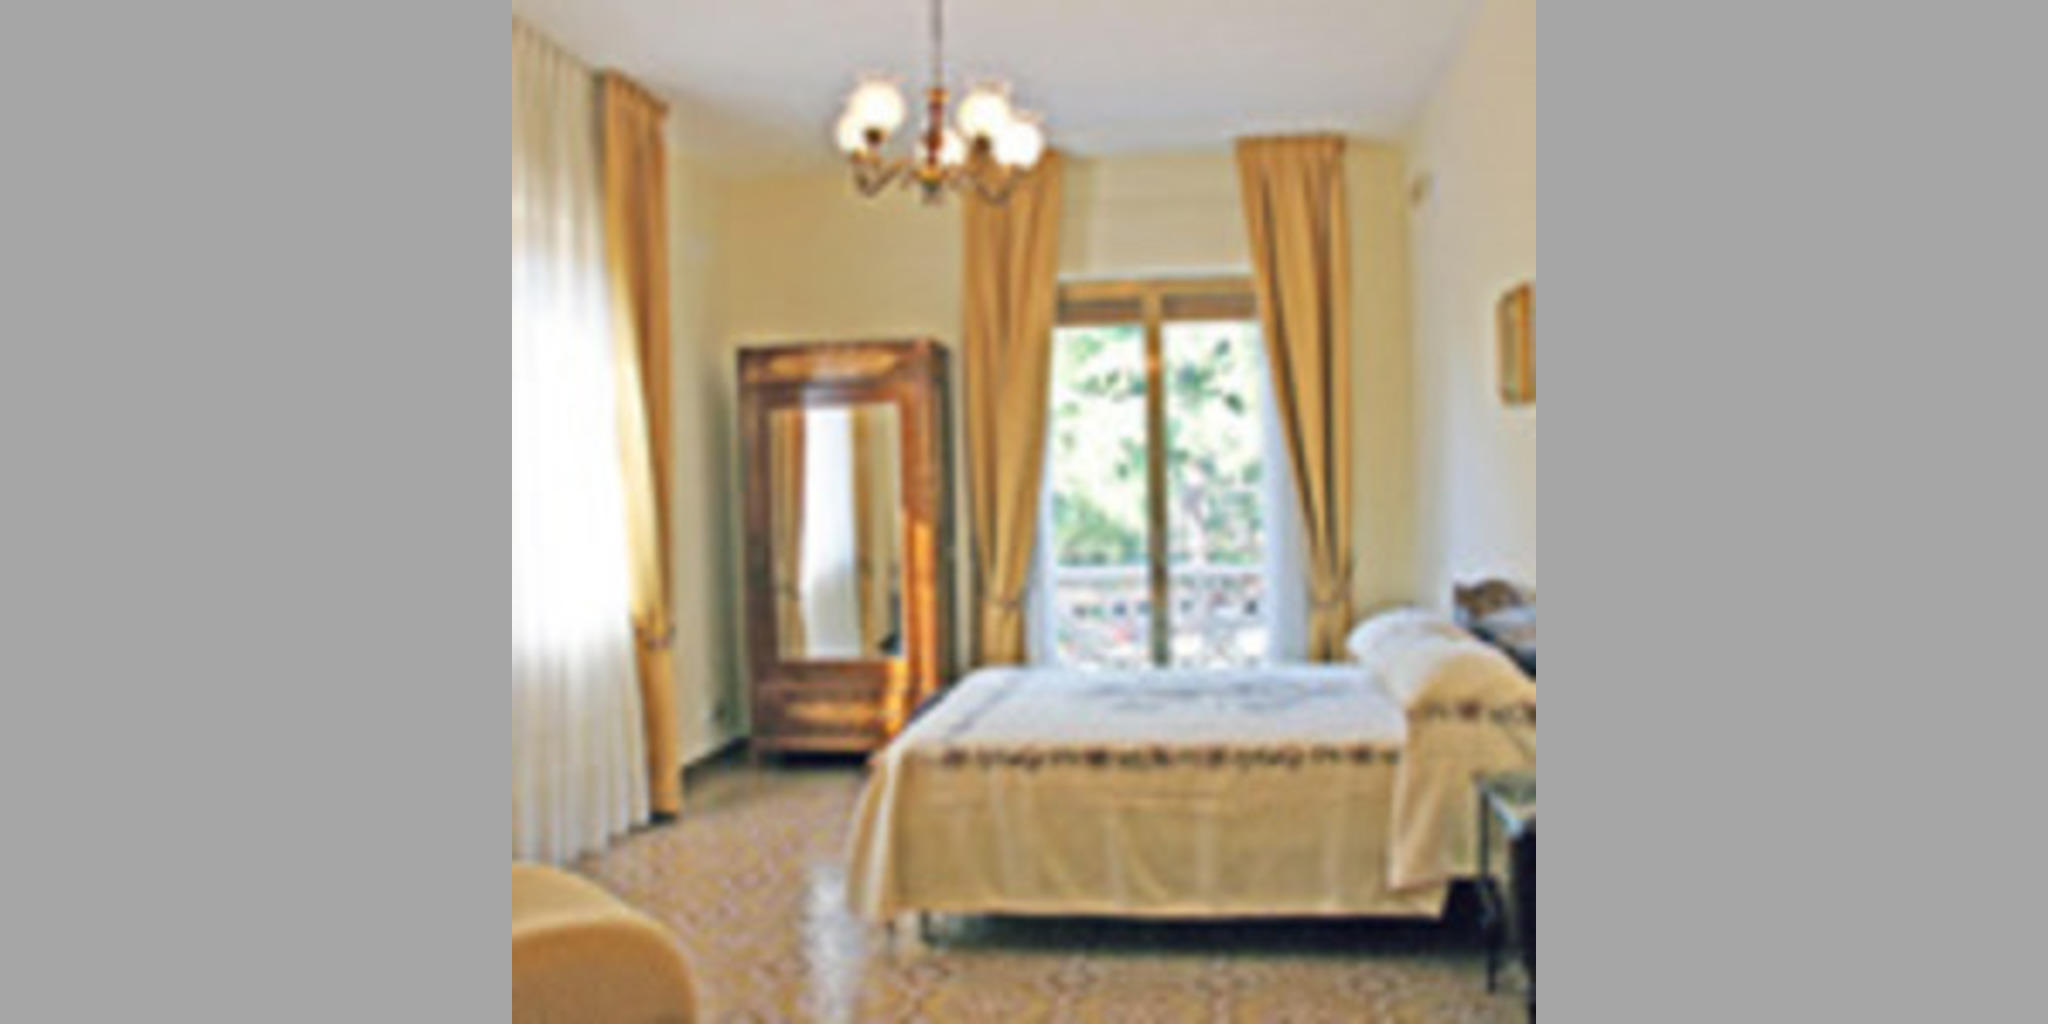 Bed & Breakfast Castellana Grotte - Castellana Grotte_A